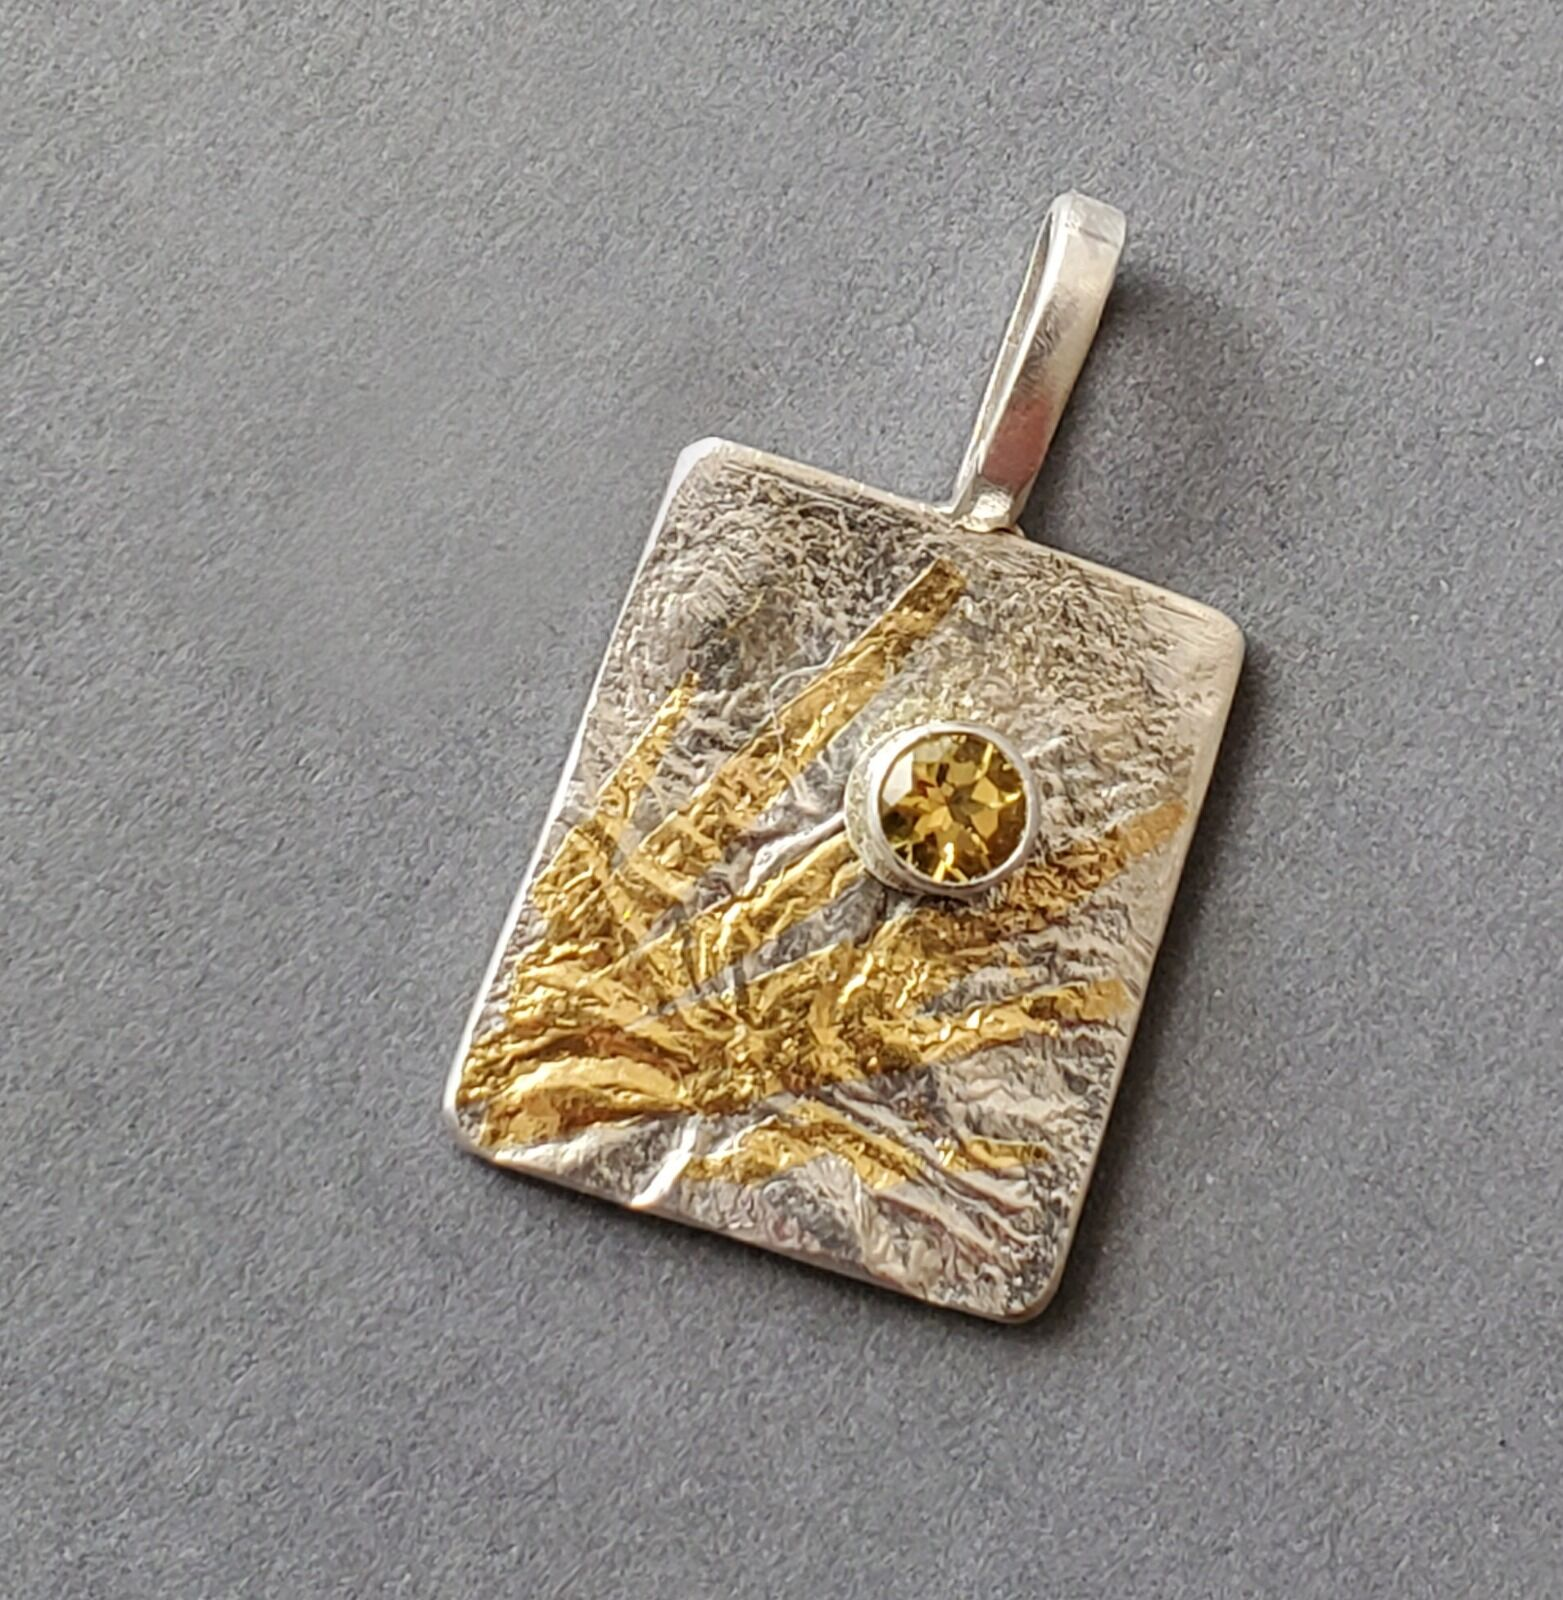 N19041 - Reticulated silver rectangle with 24 kt gold and citrine stone